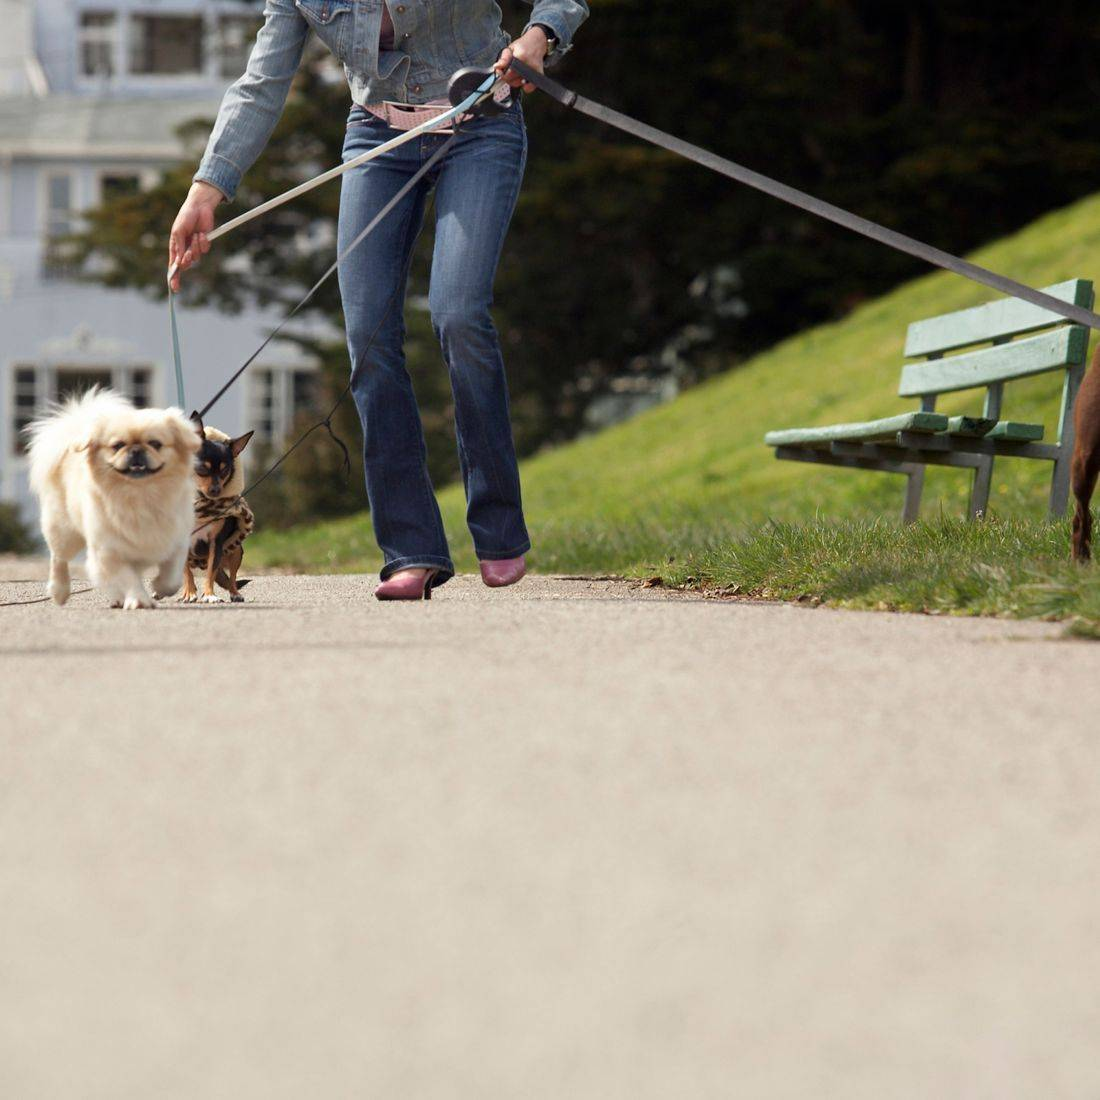 image of person walking dogs